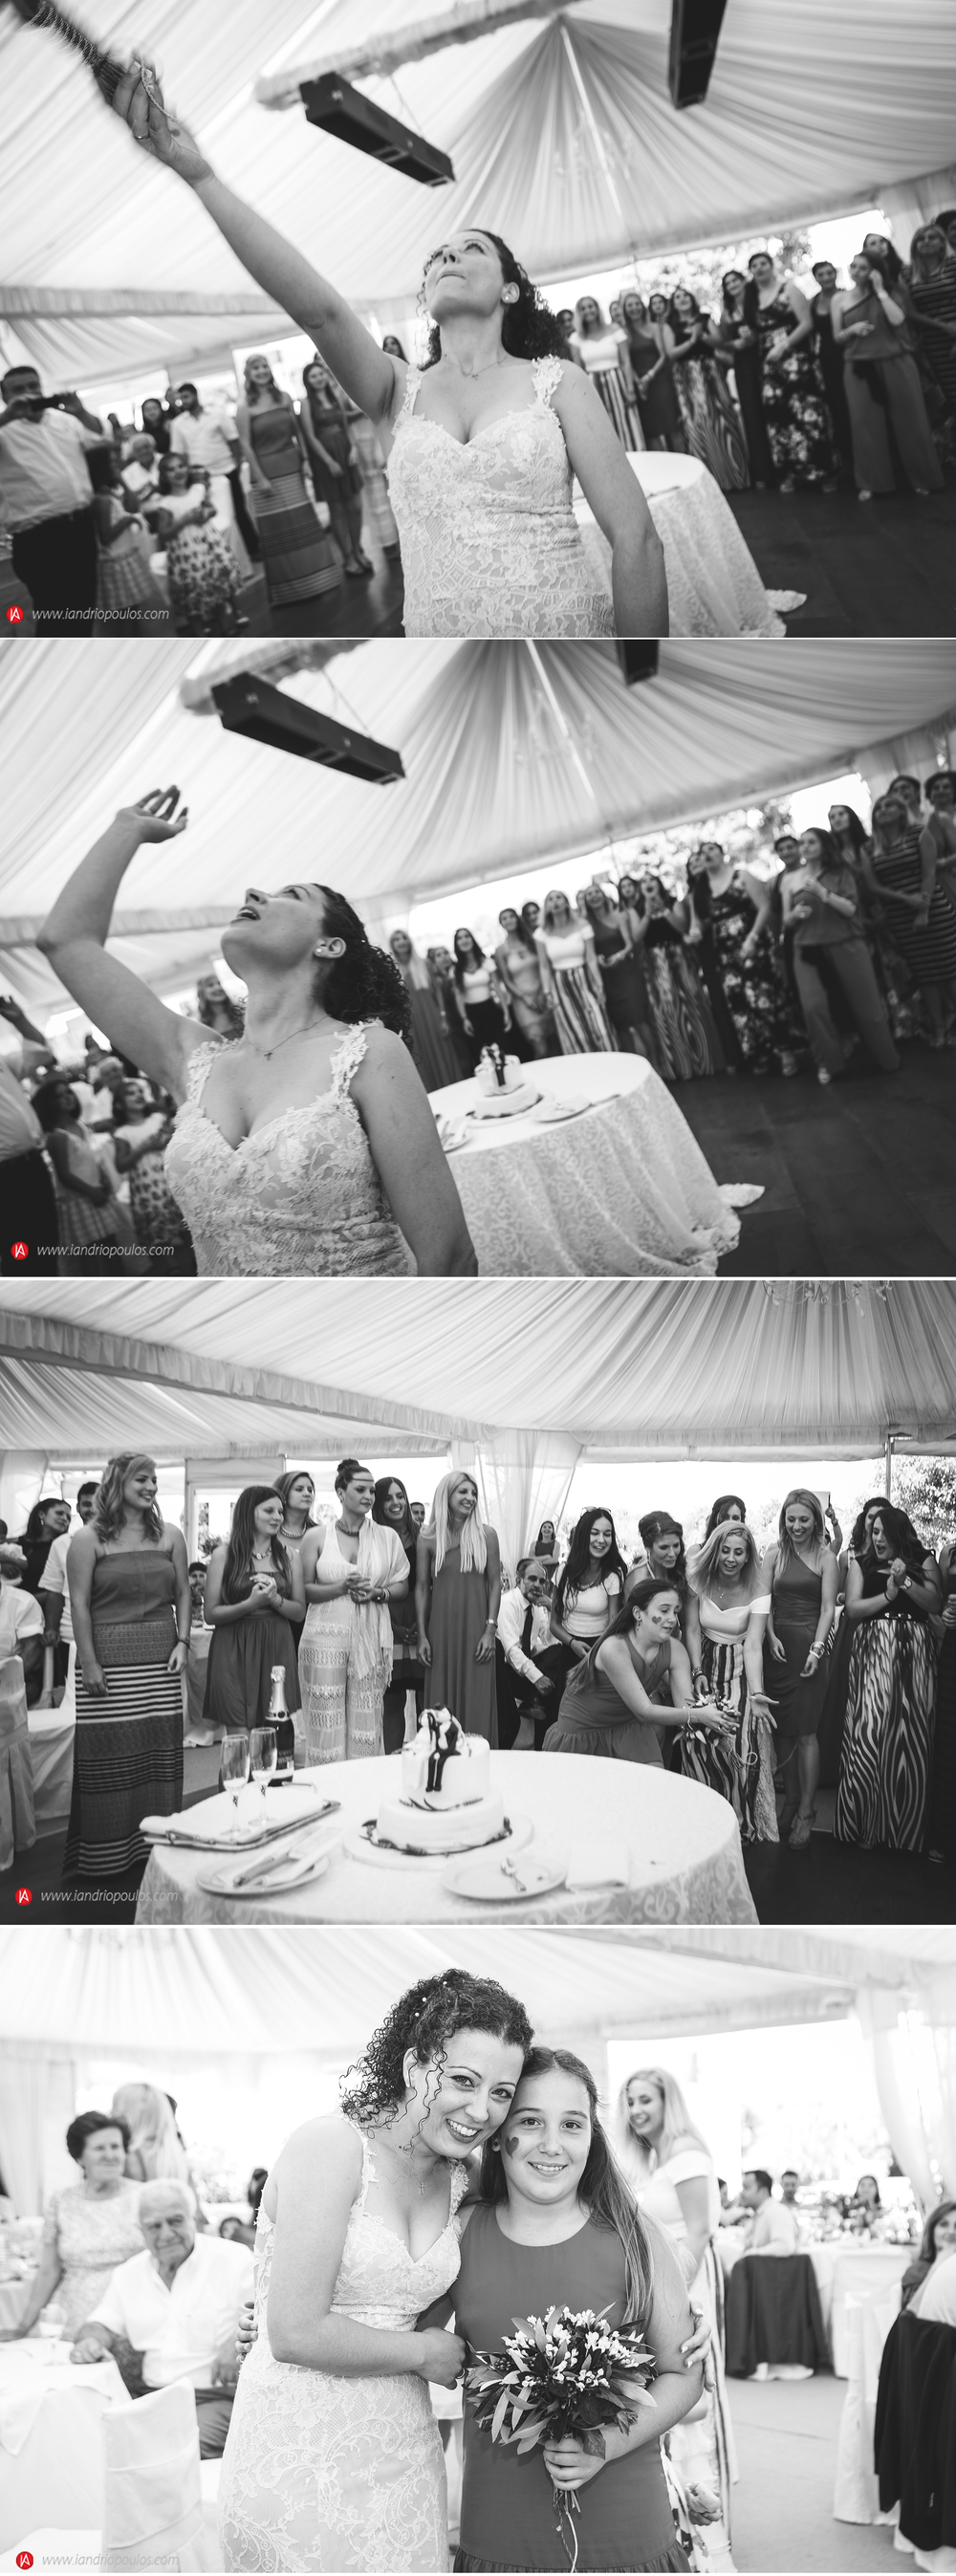 IOANNIS ANDRIOPOULOS WEDDINGS KORINTHOS 32.jpg